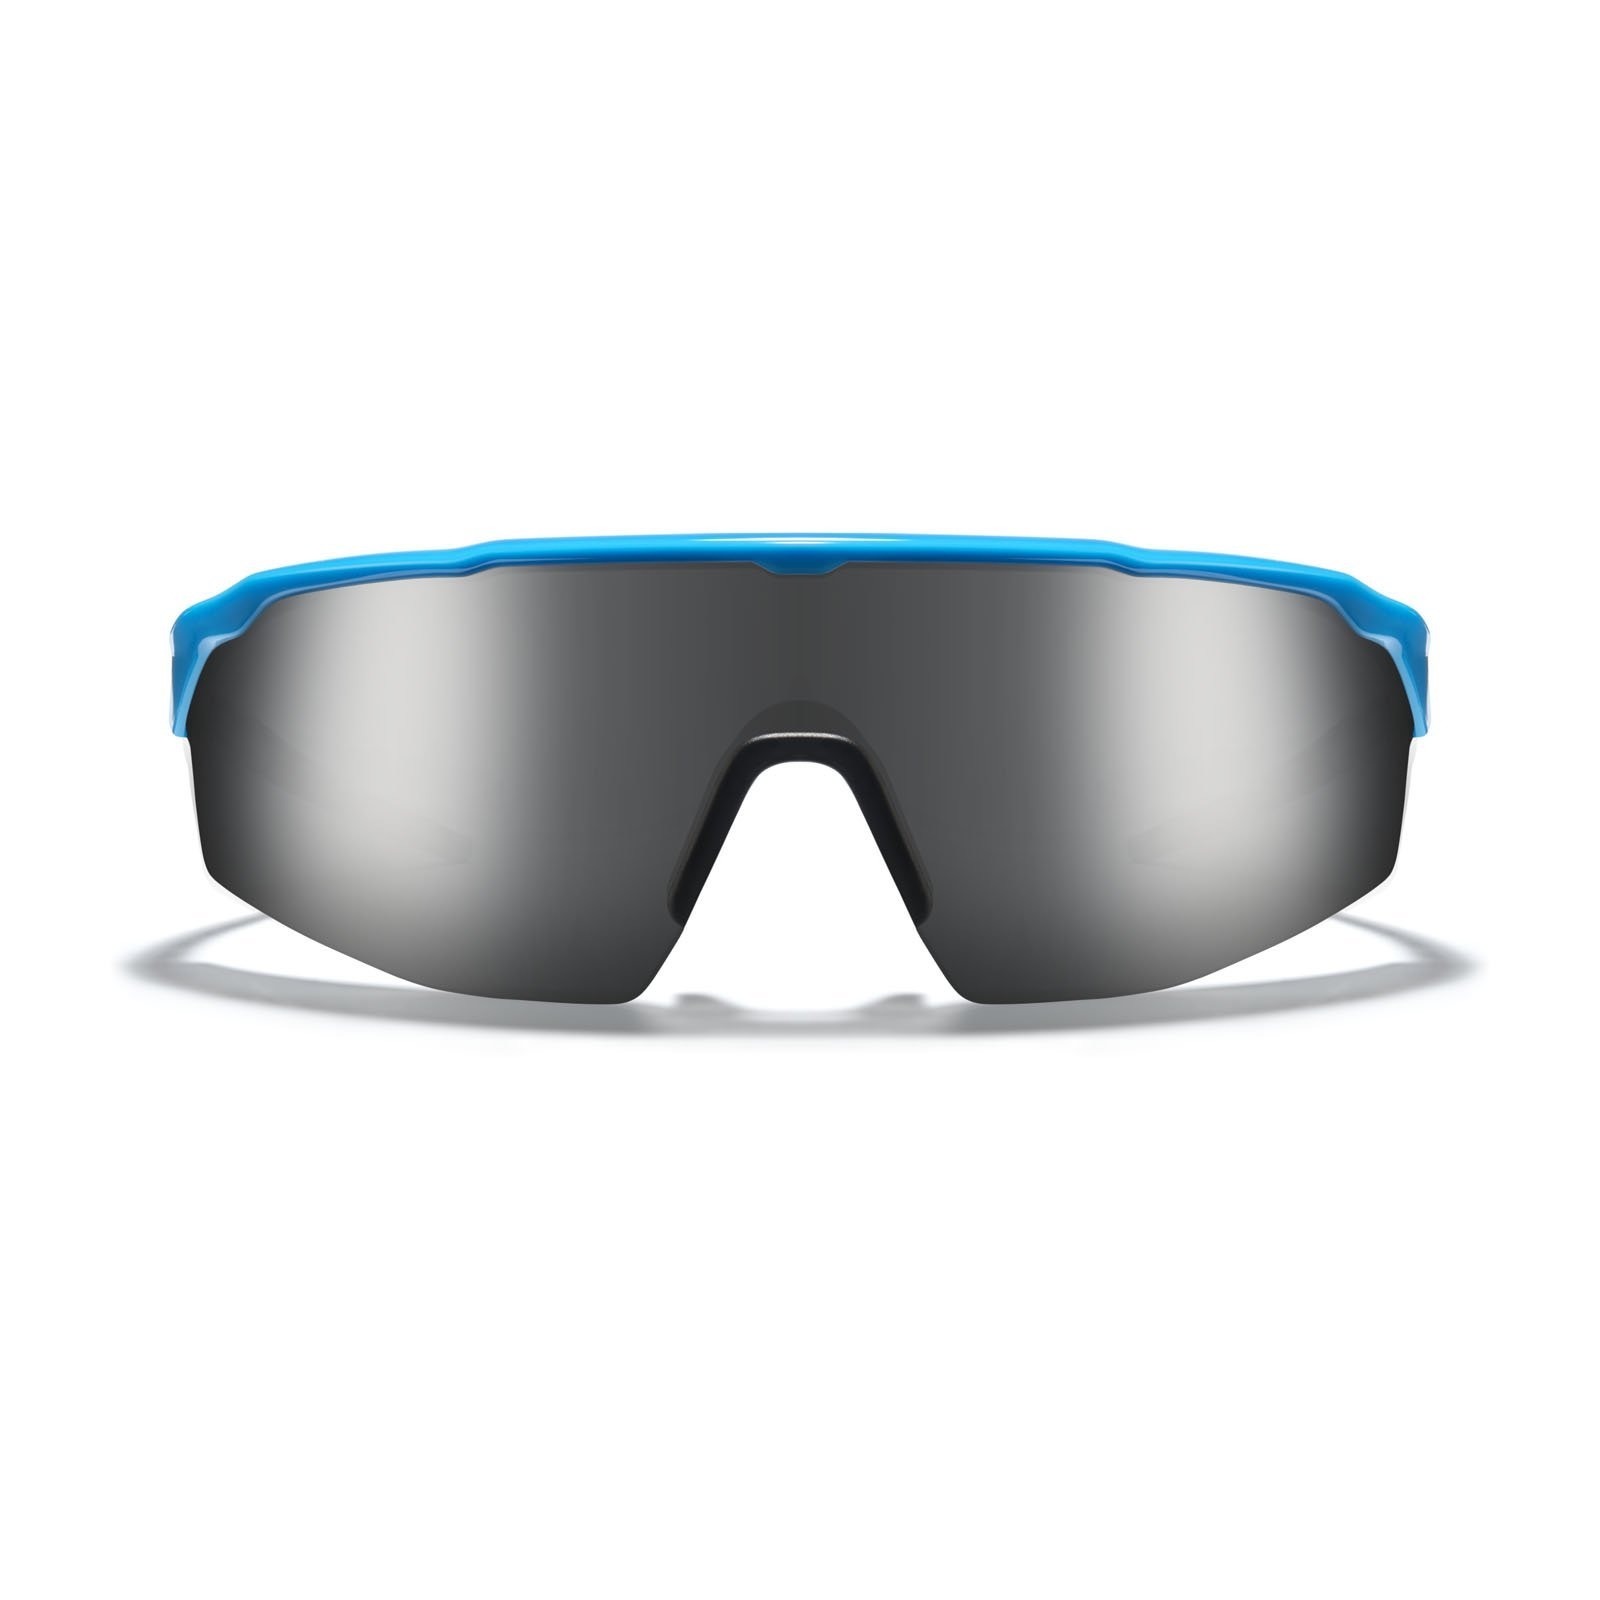 bef4ef4fc461 Get Quotations · ROKA SR-1 APEX Advanced Sports Performance Ultra Light  Weight Sunglasses with Patented Gecko Pad